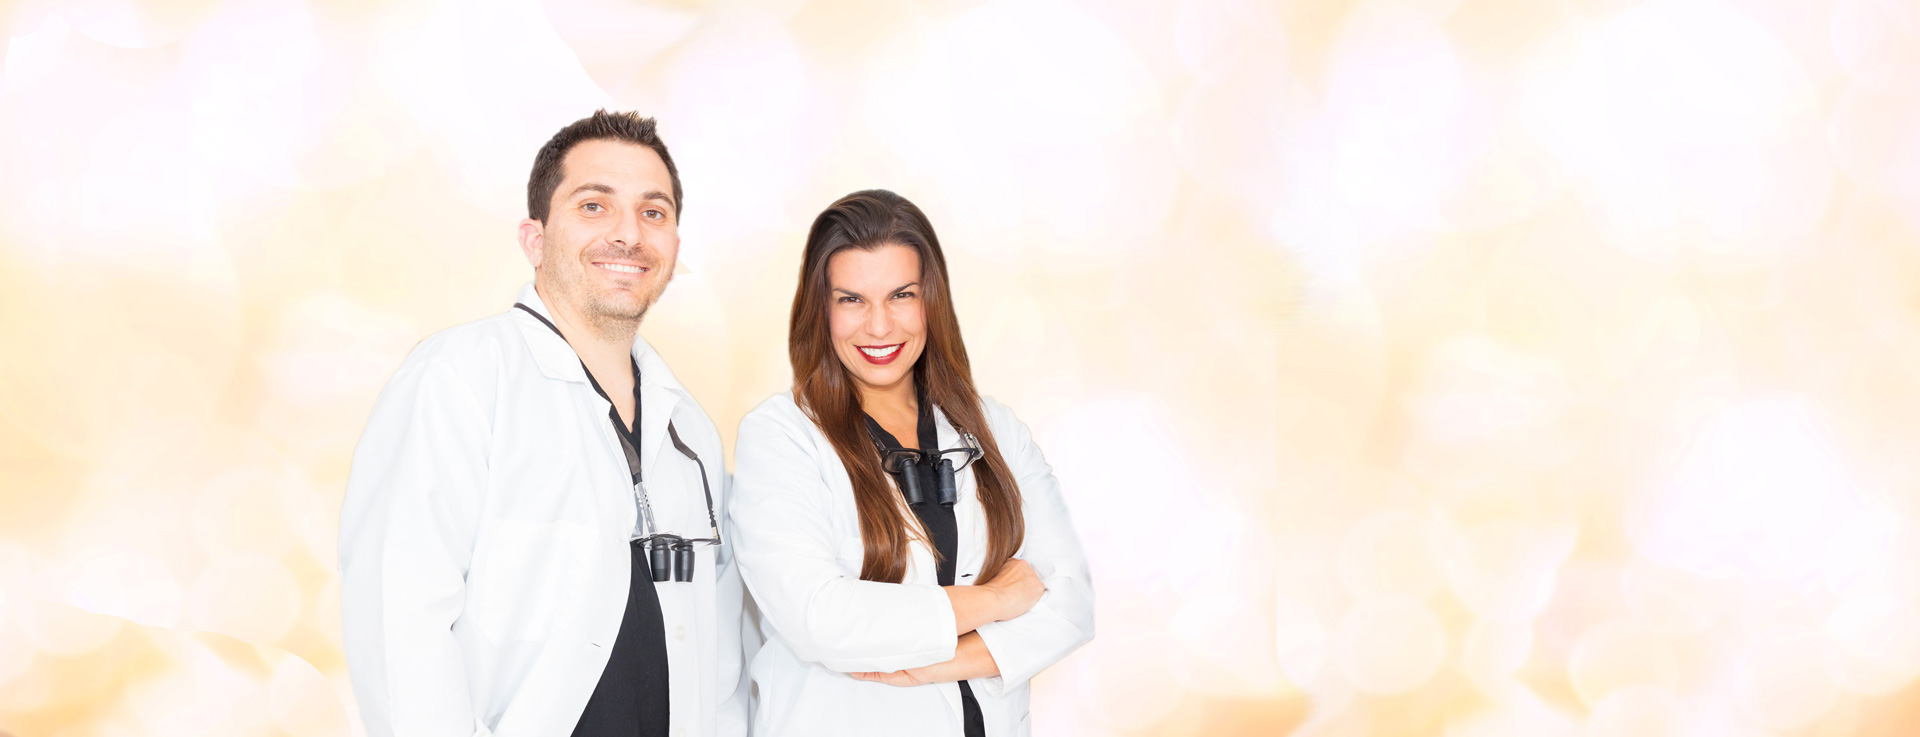 Port Orange Dentist - Dr Bowers - Dr Craighead